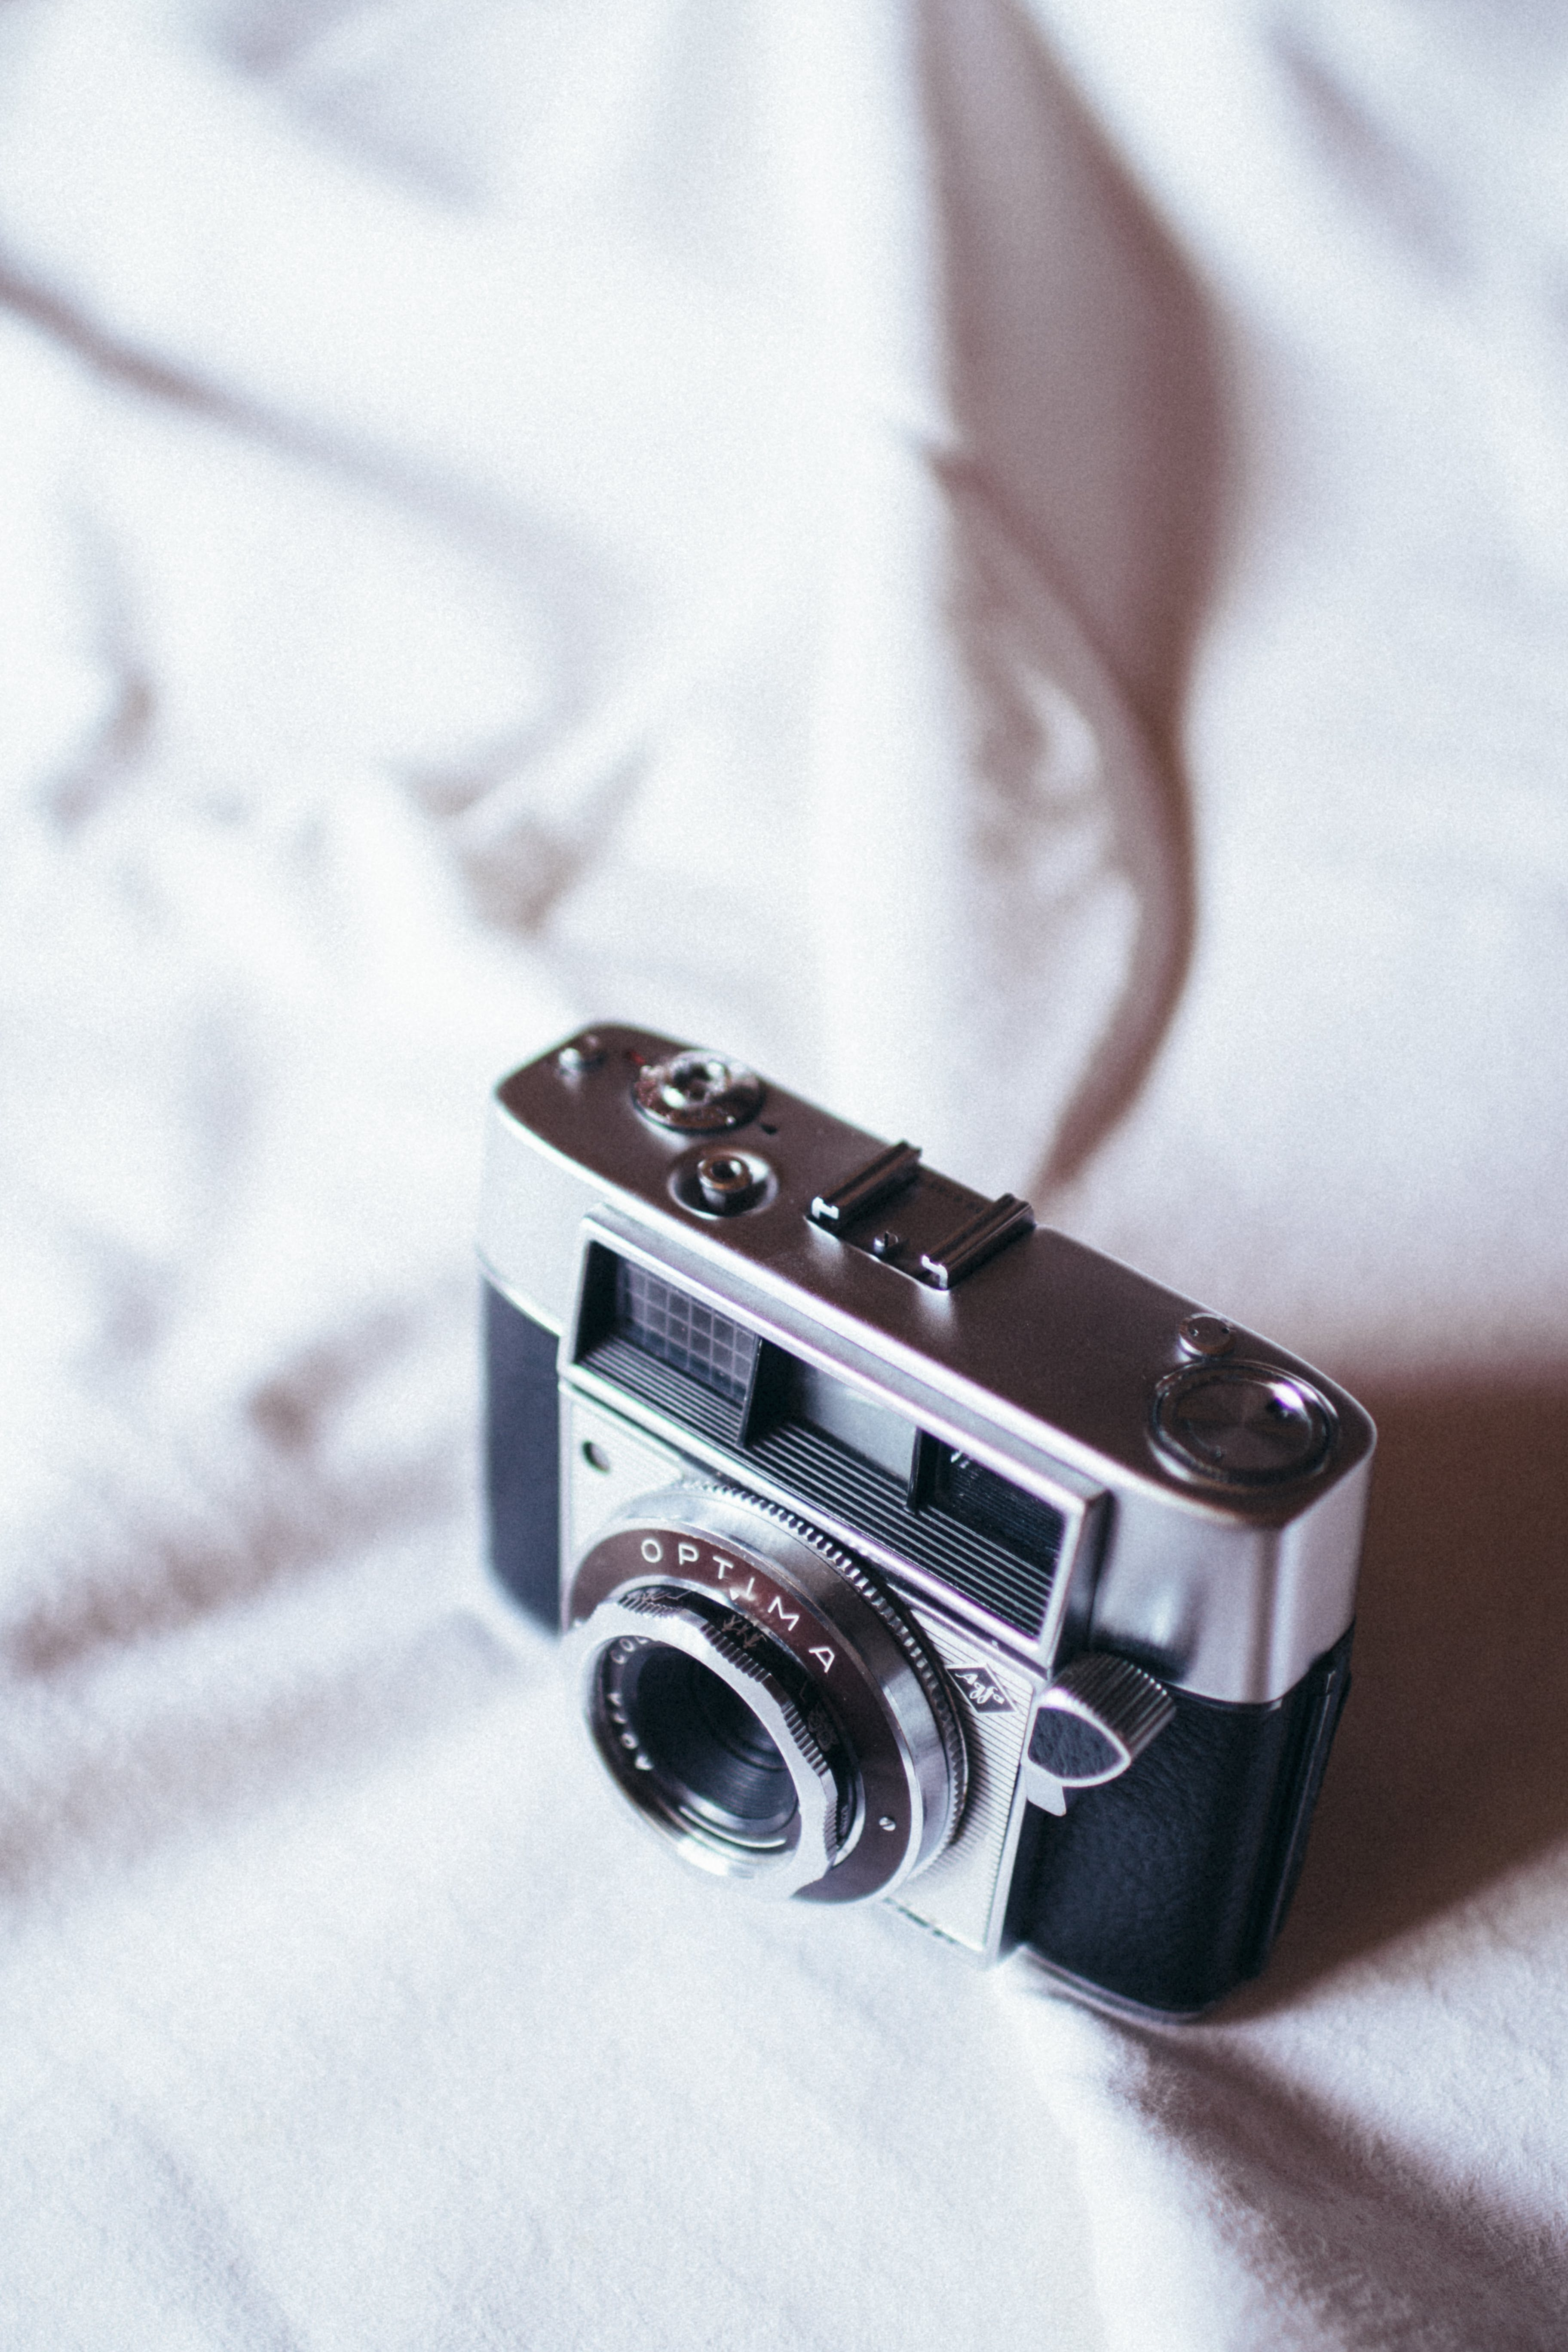 Black And Grey Camera On White Cloth